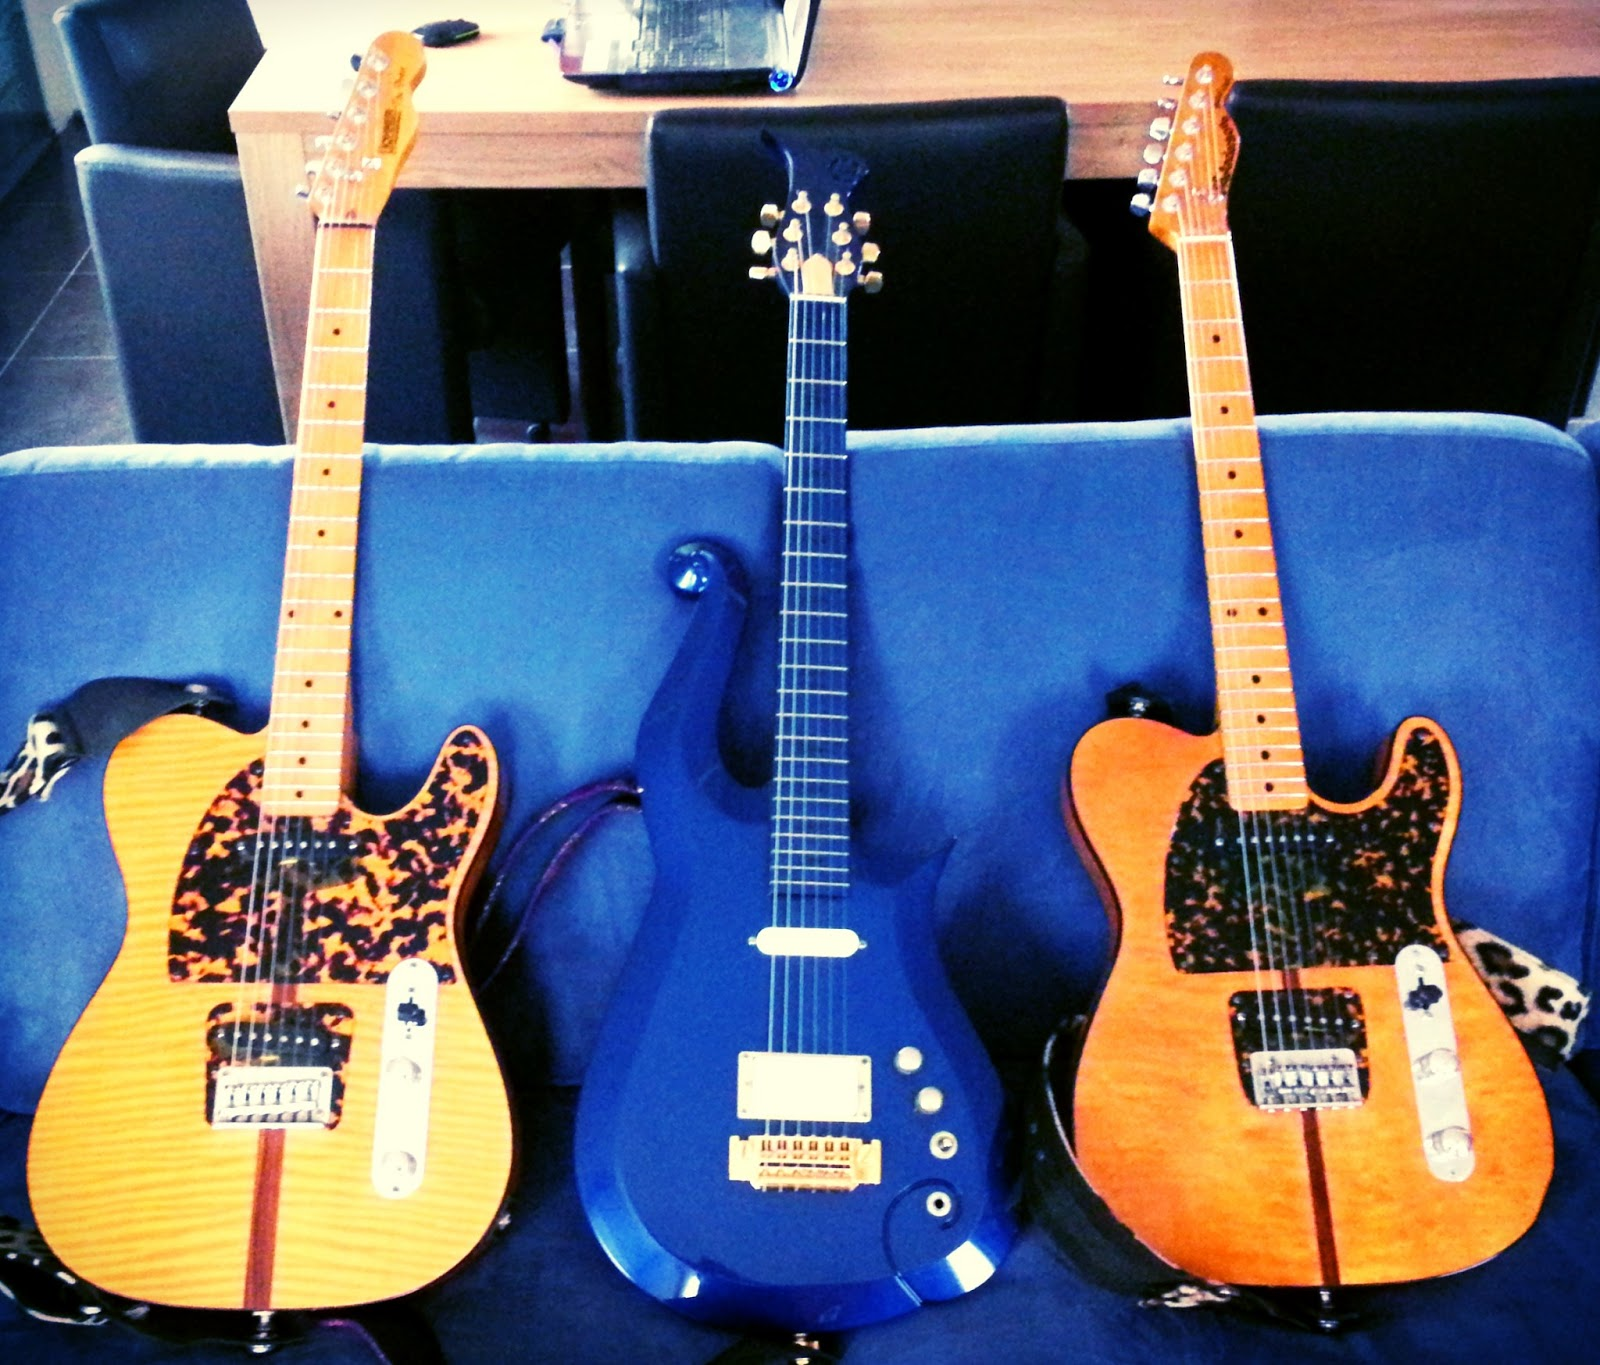 Cloud guitar central the beautiful ones may 16 2013 buycottarizona